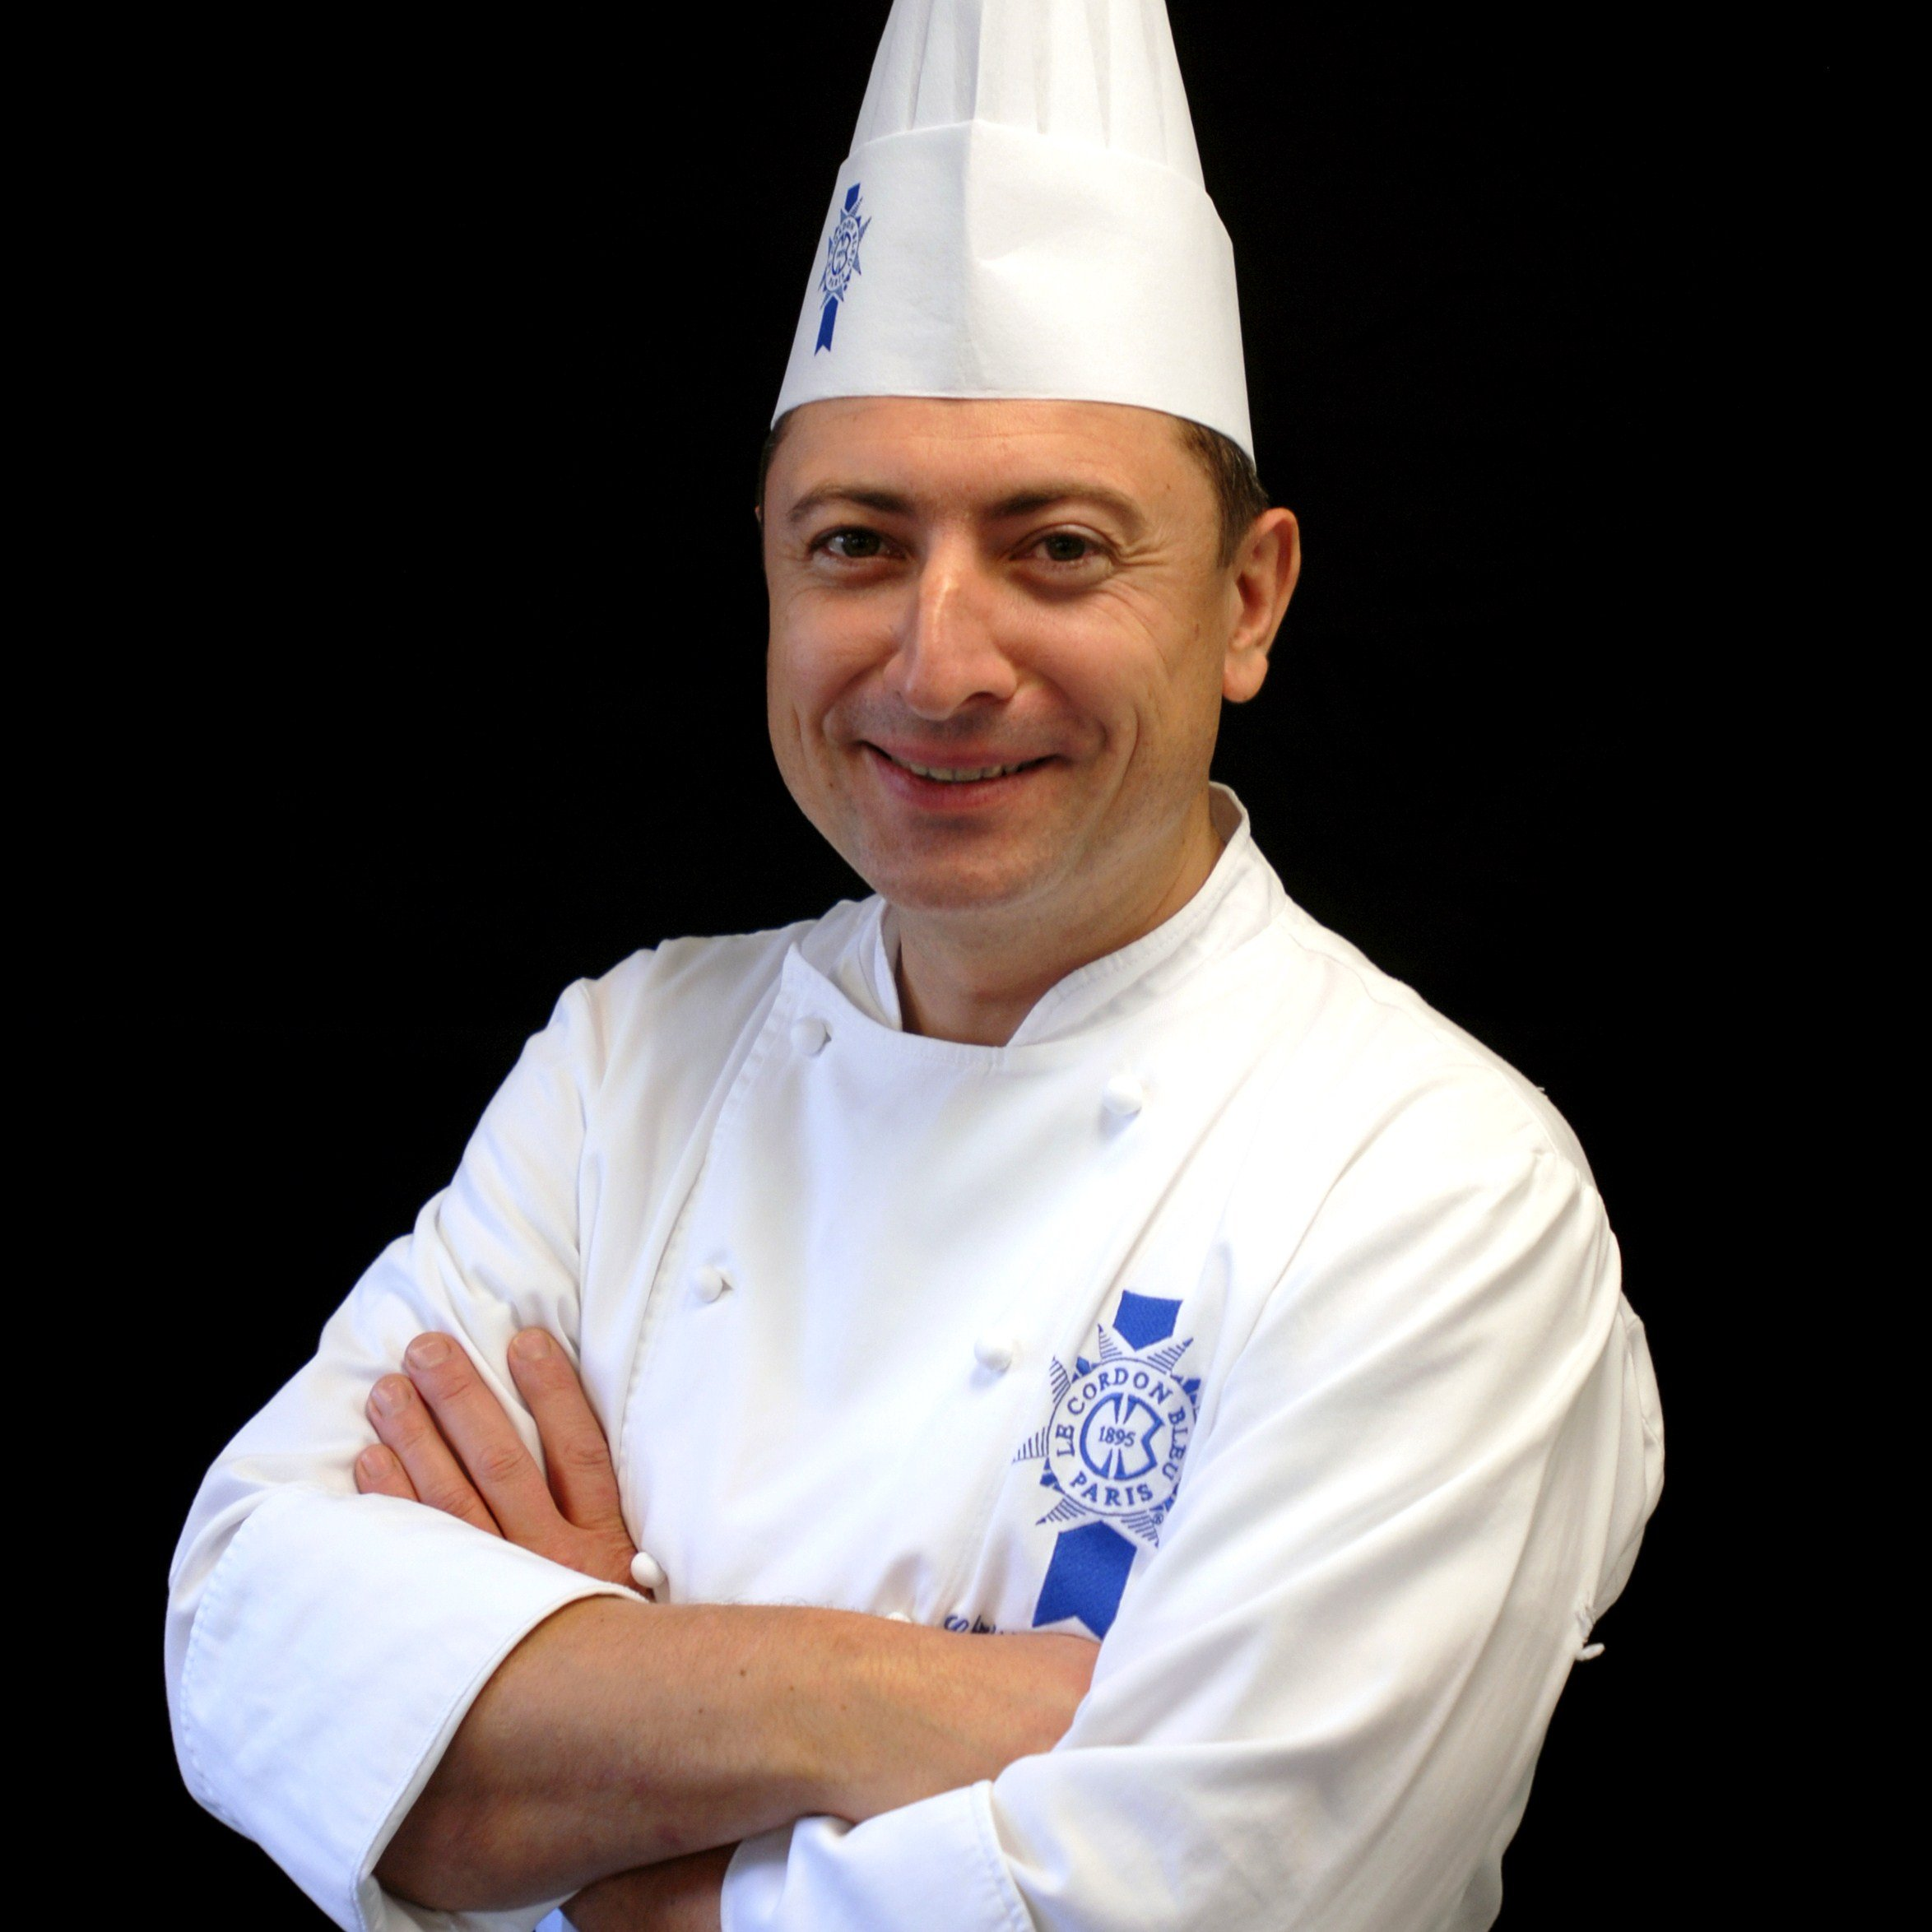 Chef Franck Jeadon - Master Chef at Le Cordon Bleu London